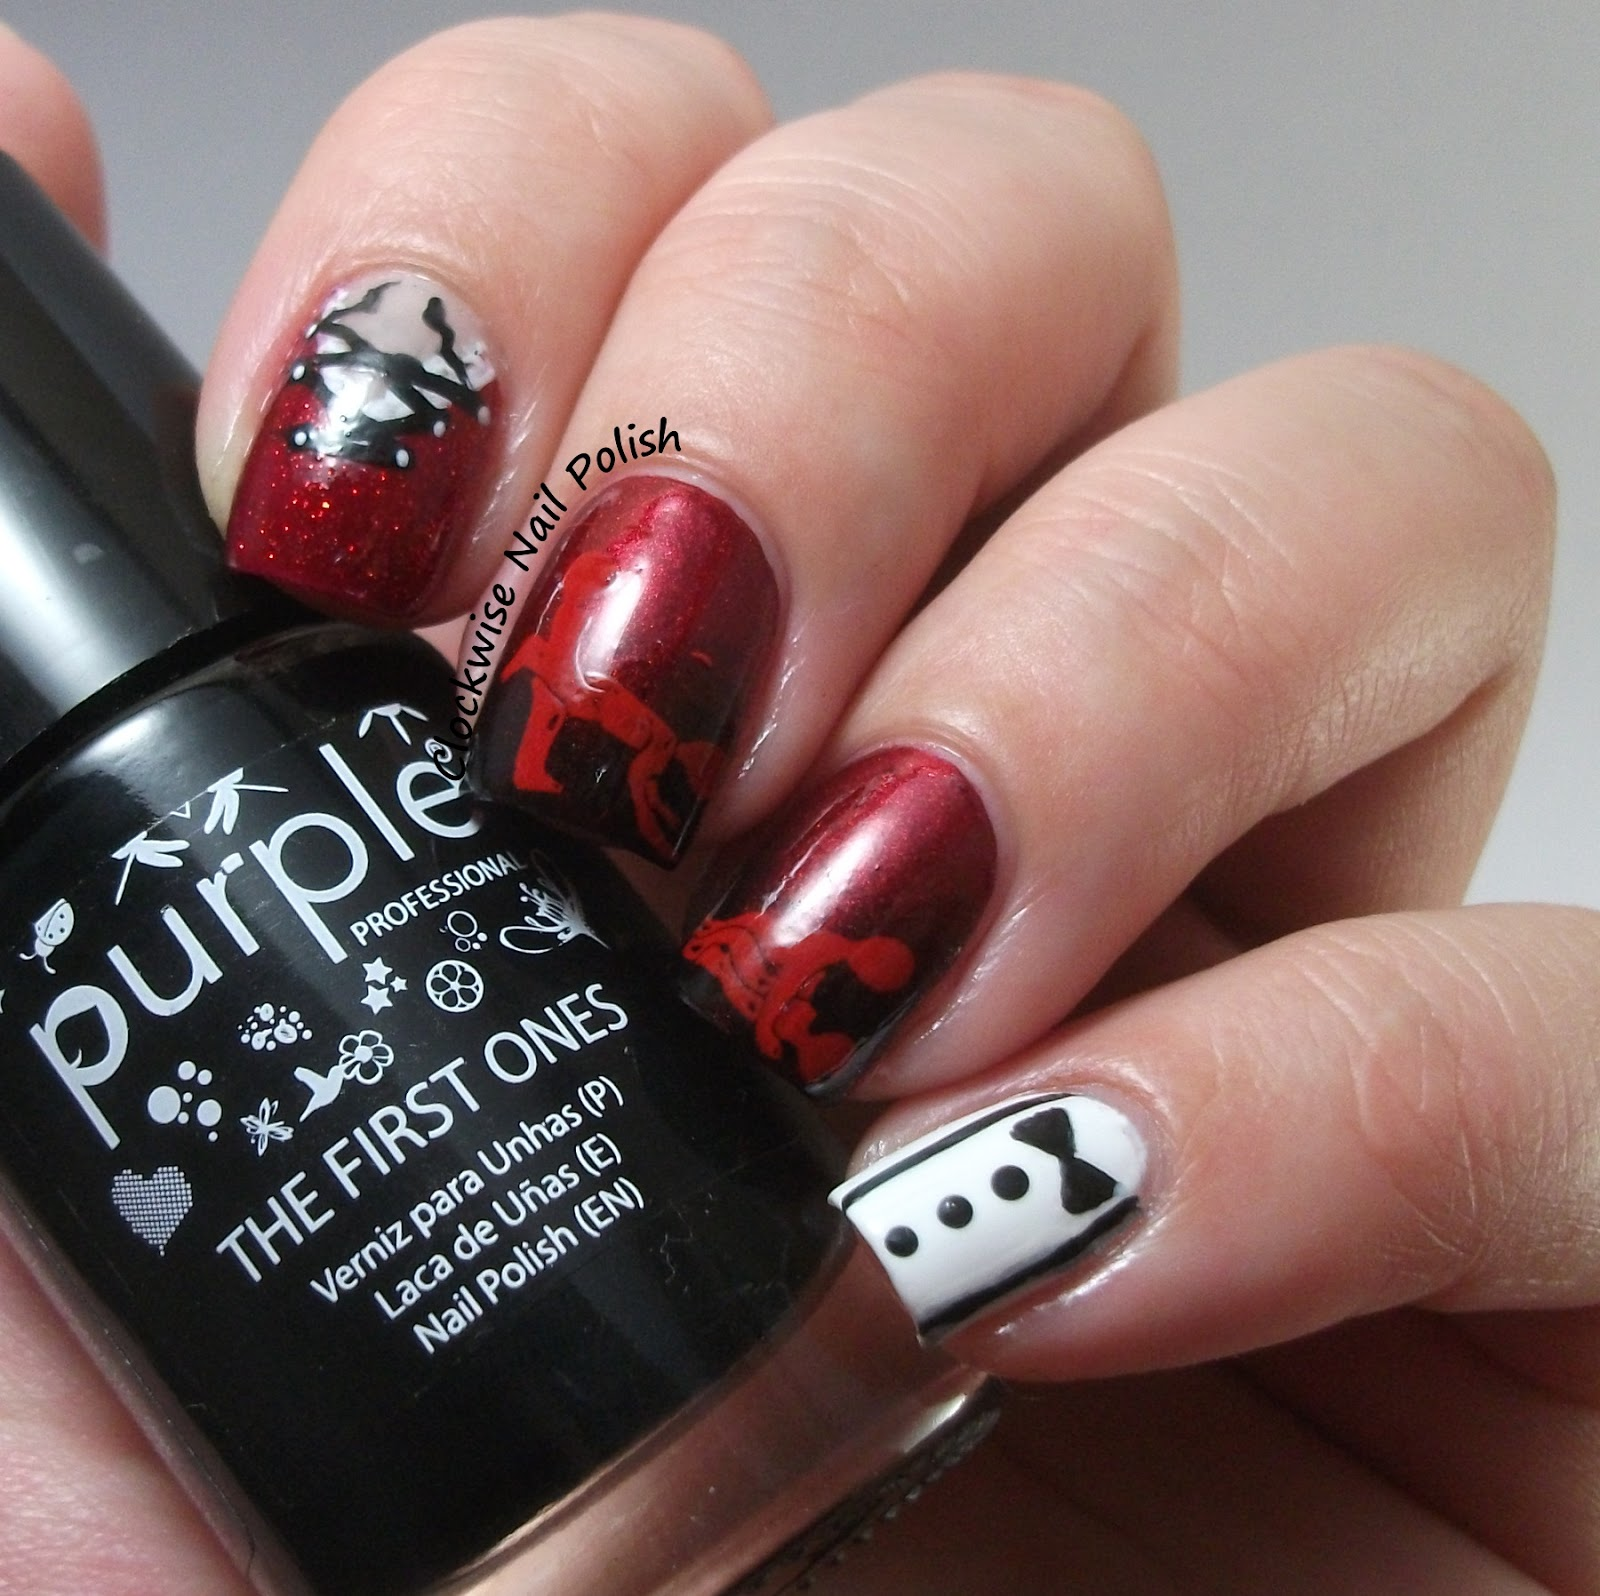 Que Significa Black Nail Polish: The Clockwise Nail Polish: Sexy Romance